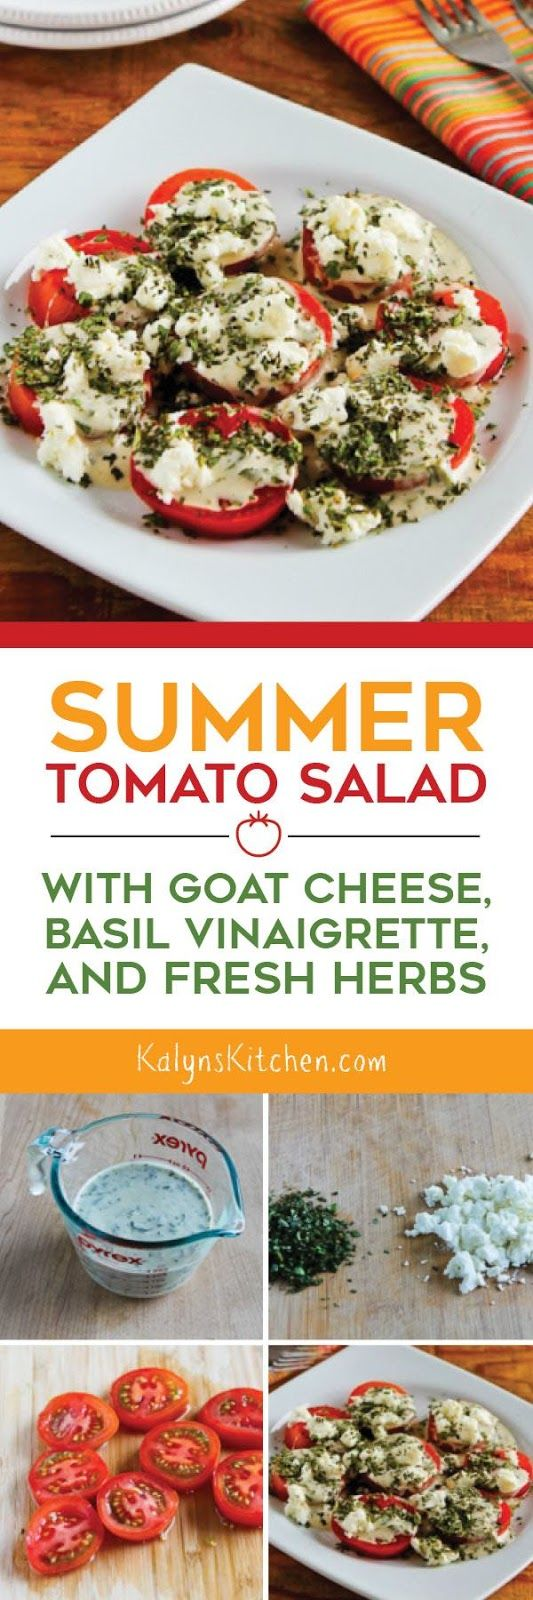 This Summer Tomato Salad with Goat Cheese, Basil Vinaigrette, and Fresh Herbs is the one I make for parties and dinner guests all summer long, every summer! This salad is so delicious it's just a bonus that it's low-carb, gluten-free, and South Beach Diet friendly. [found on KalynsKitchen.com]